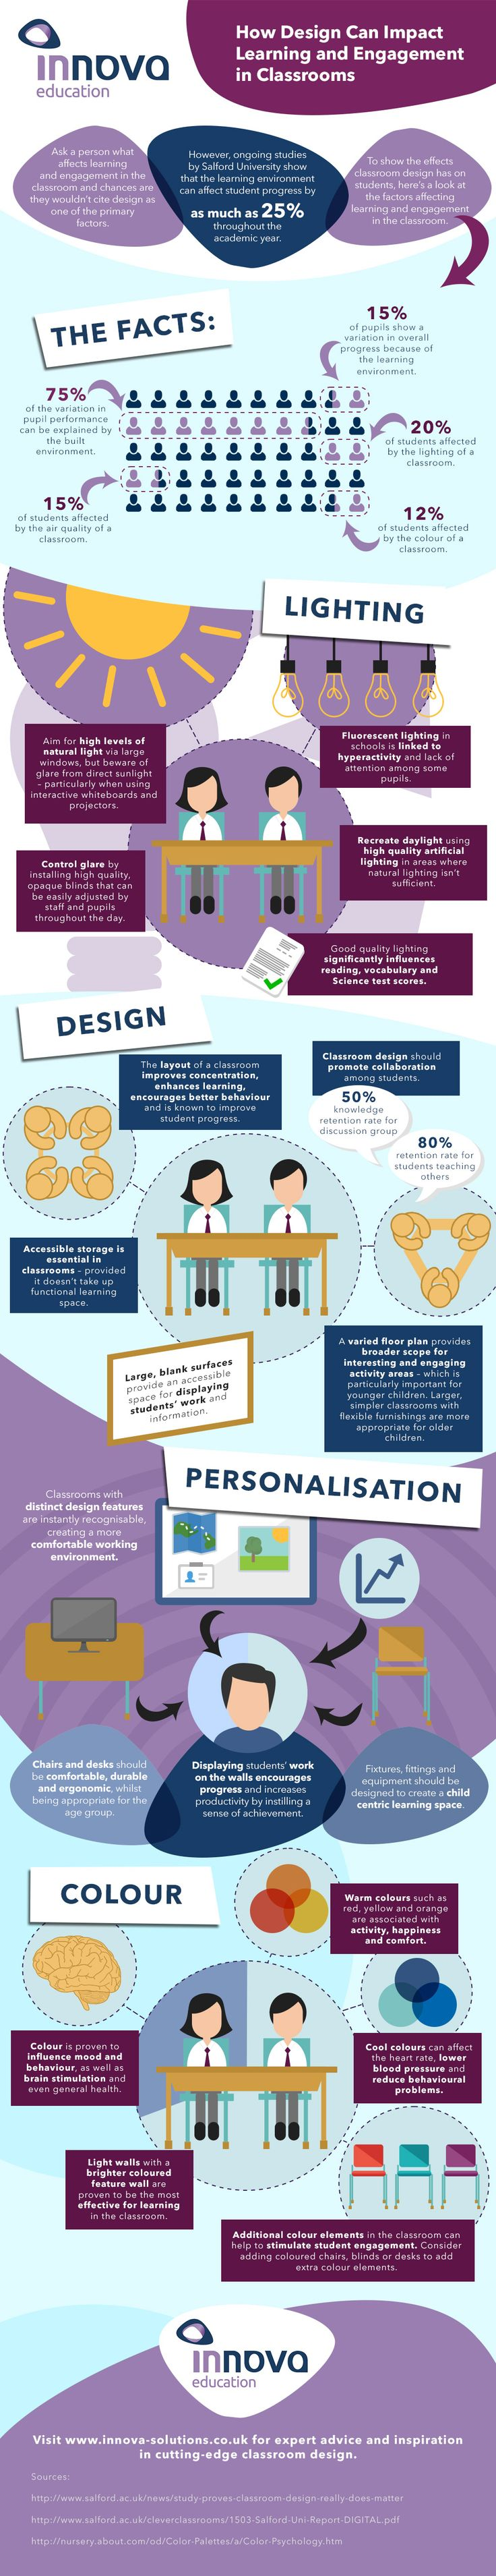 Classroom Design And Student Learning : Best images about edu infographics on pinterest